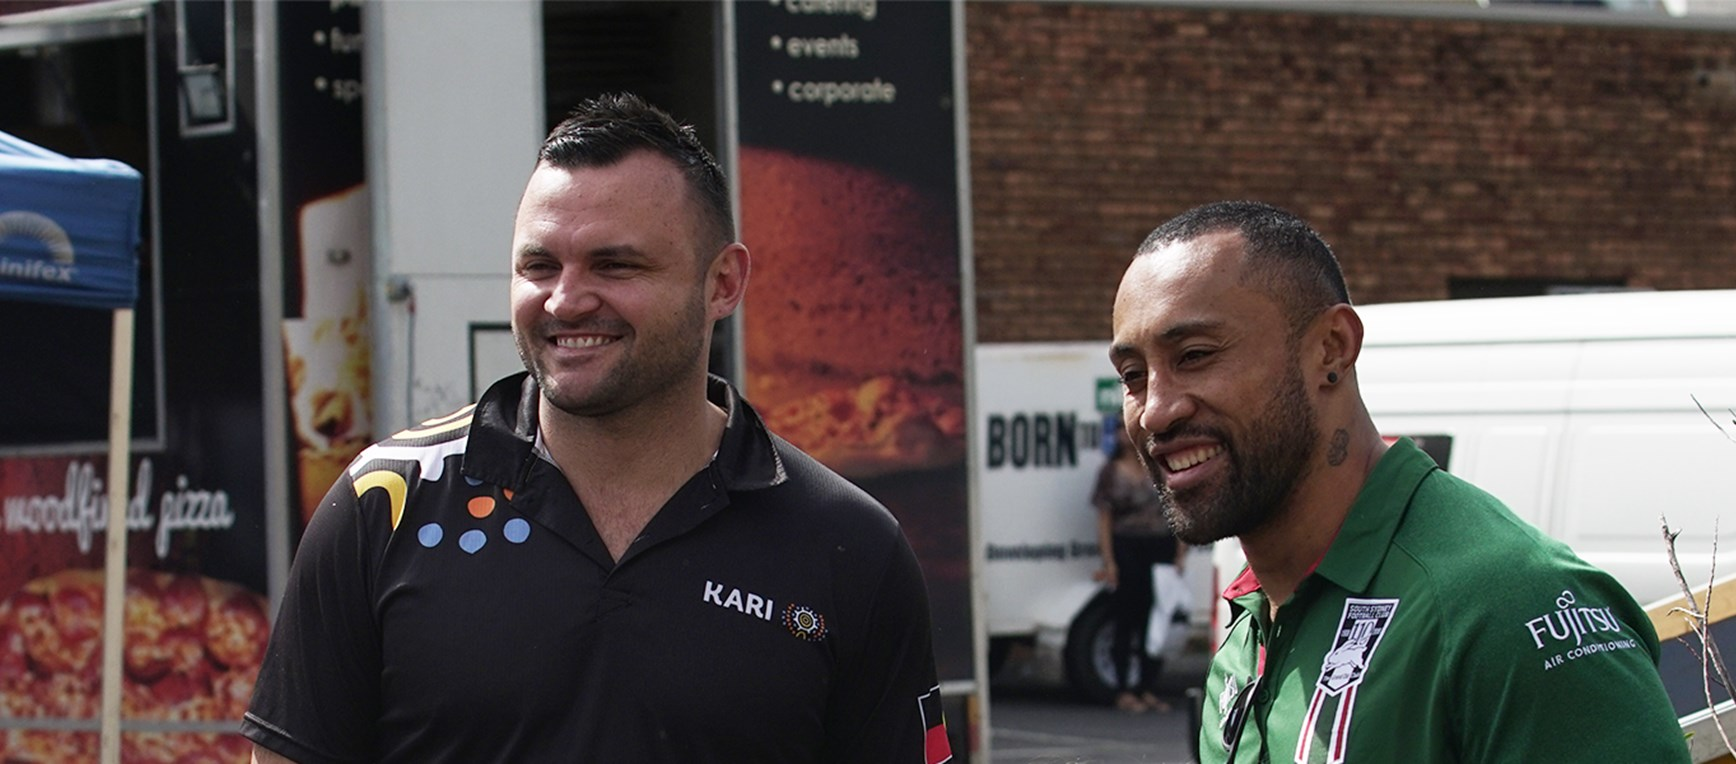 Gallery - Rabbitohs join KARI for Unity Day